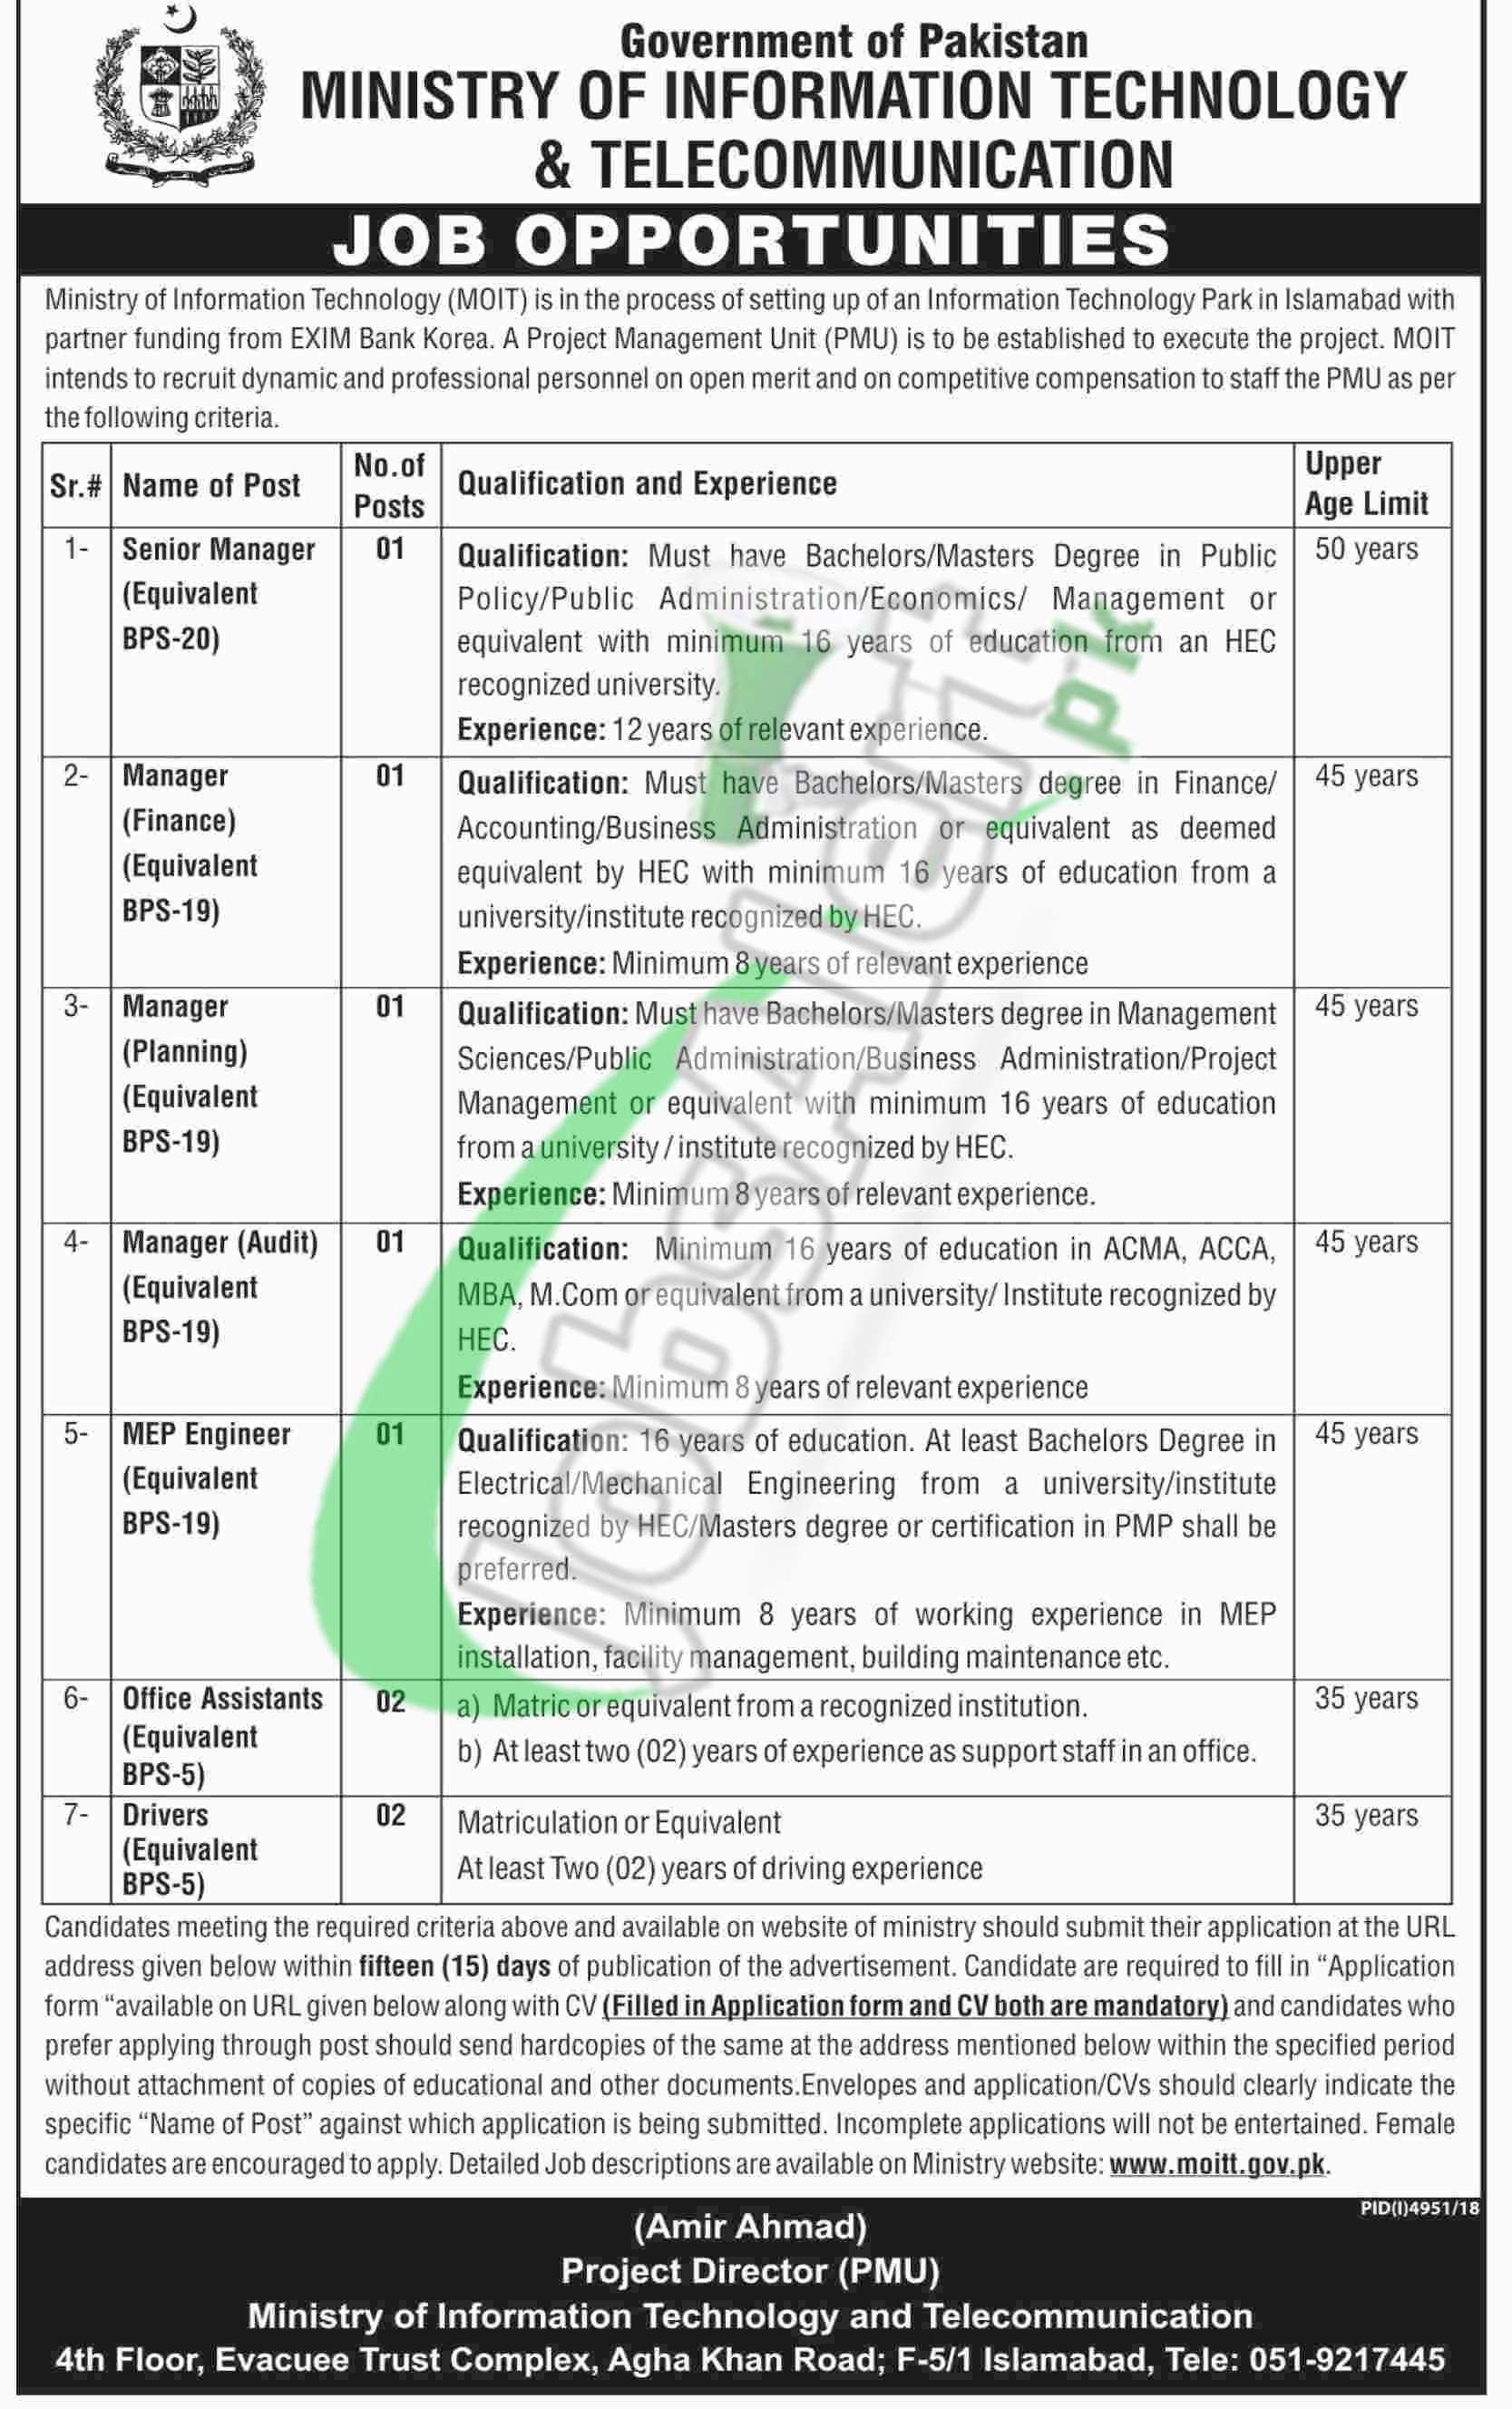 Ministry of IT Jobs 2019